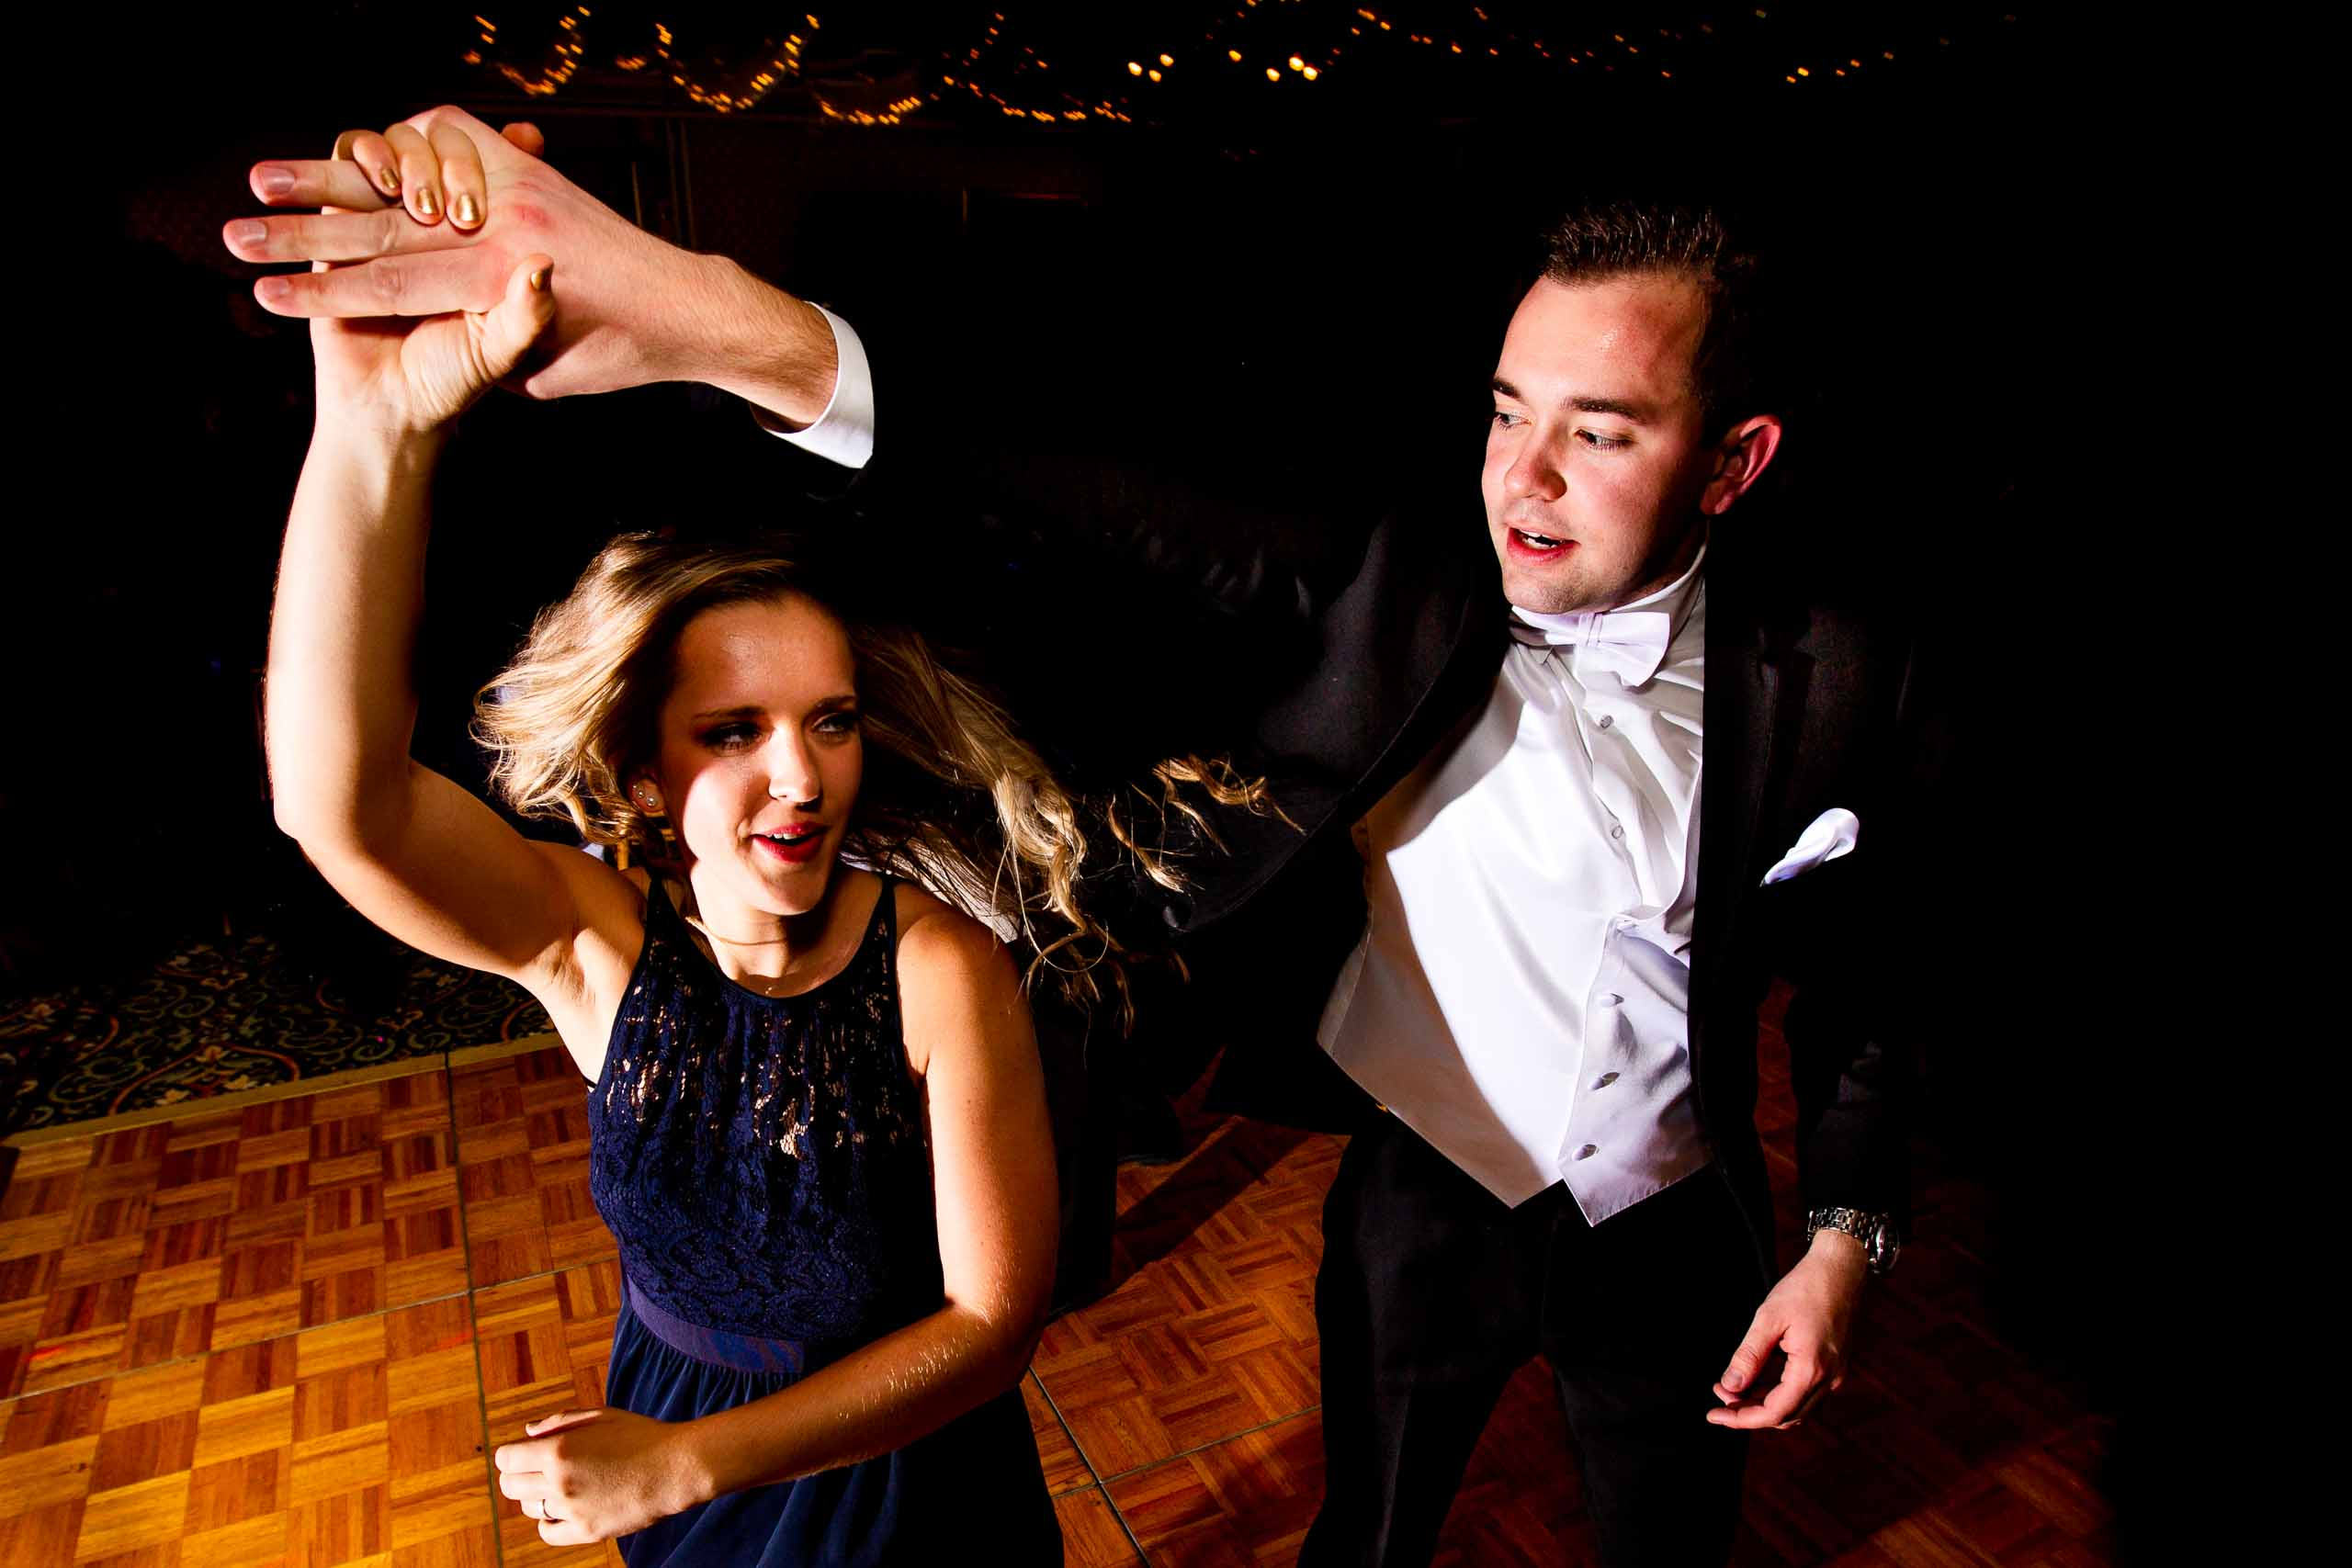 Fun photo of a groom dancing with a friend at his Columbia Gorge Hotel wedding reception